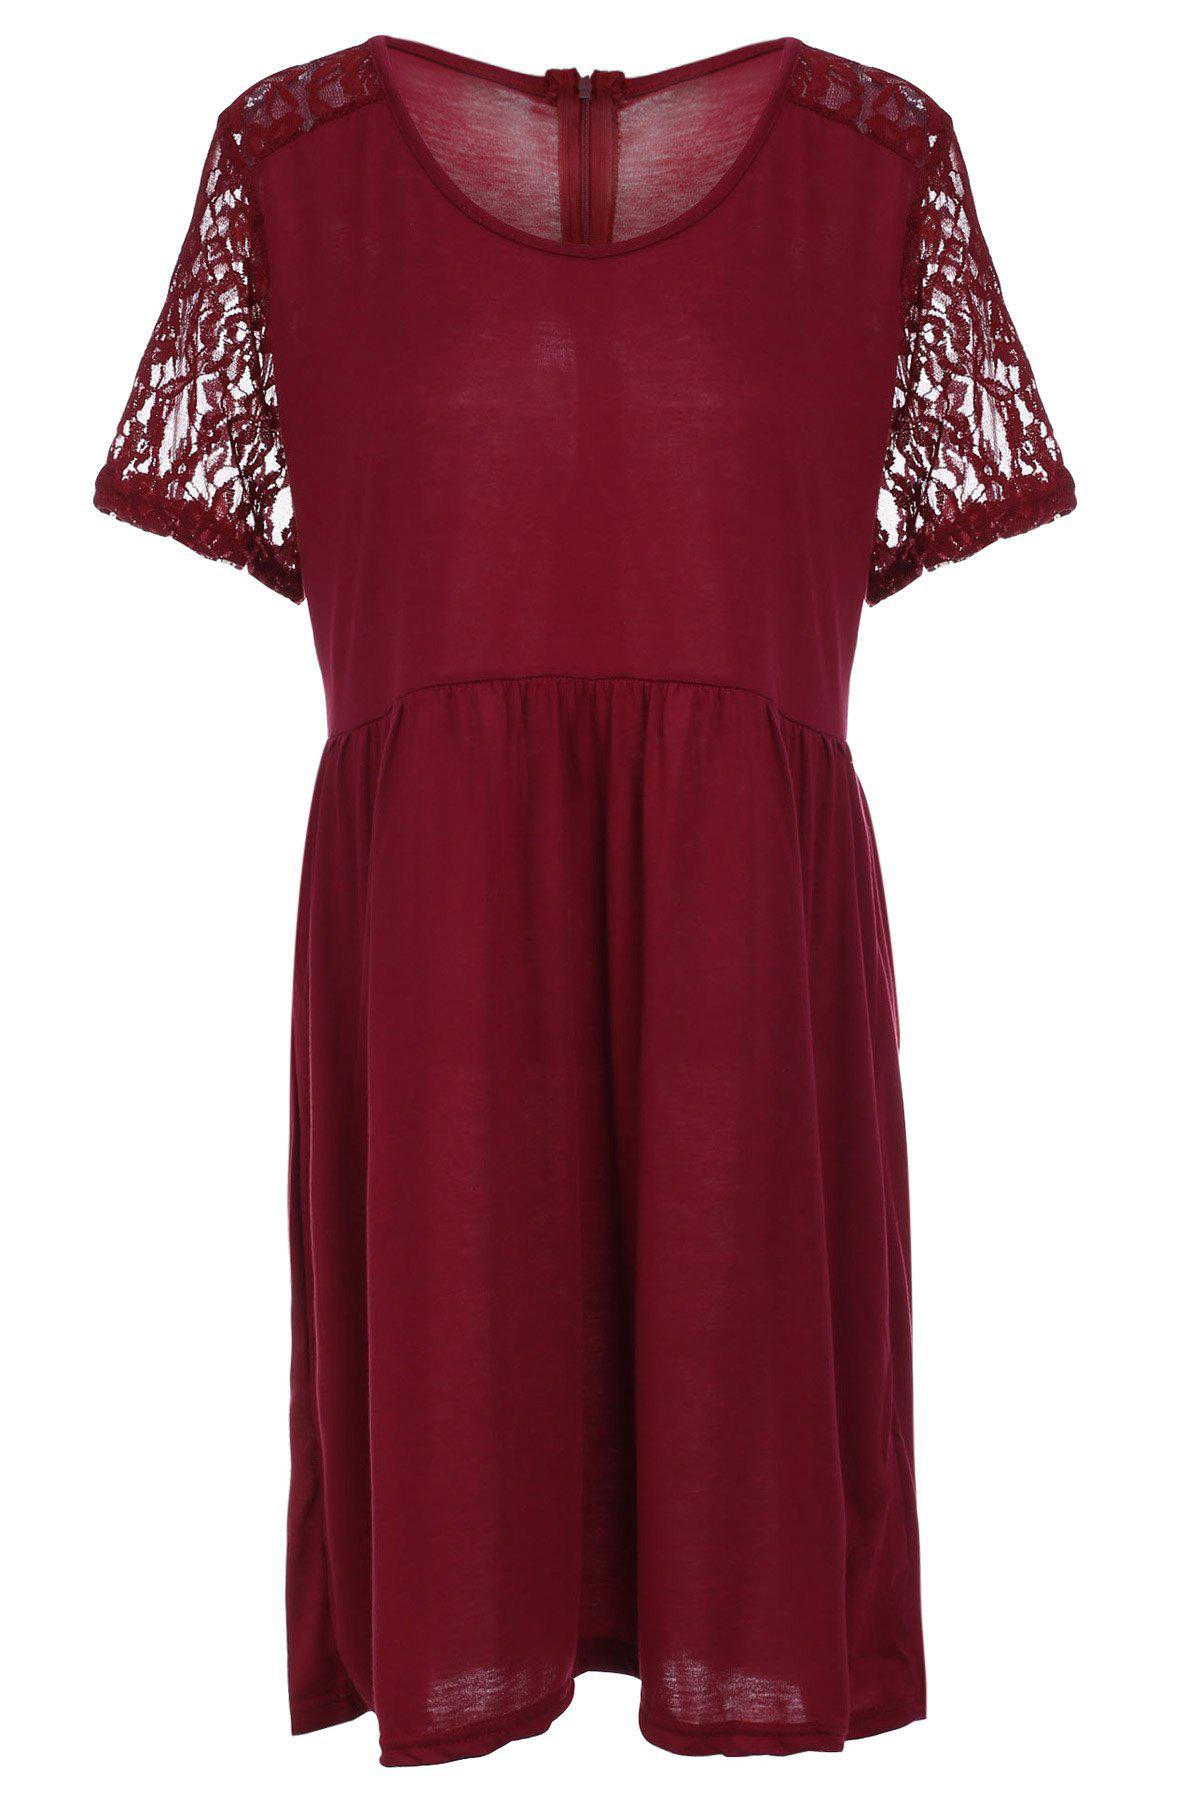 Stylish Women's Scoop Neck Lace Splicing Short Sleeve Plus Size Dress - WINE RED XL